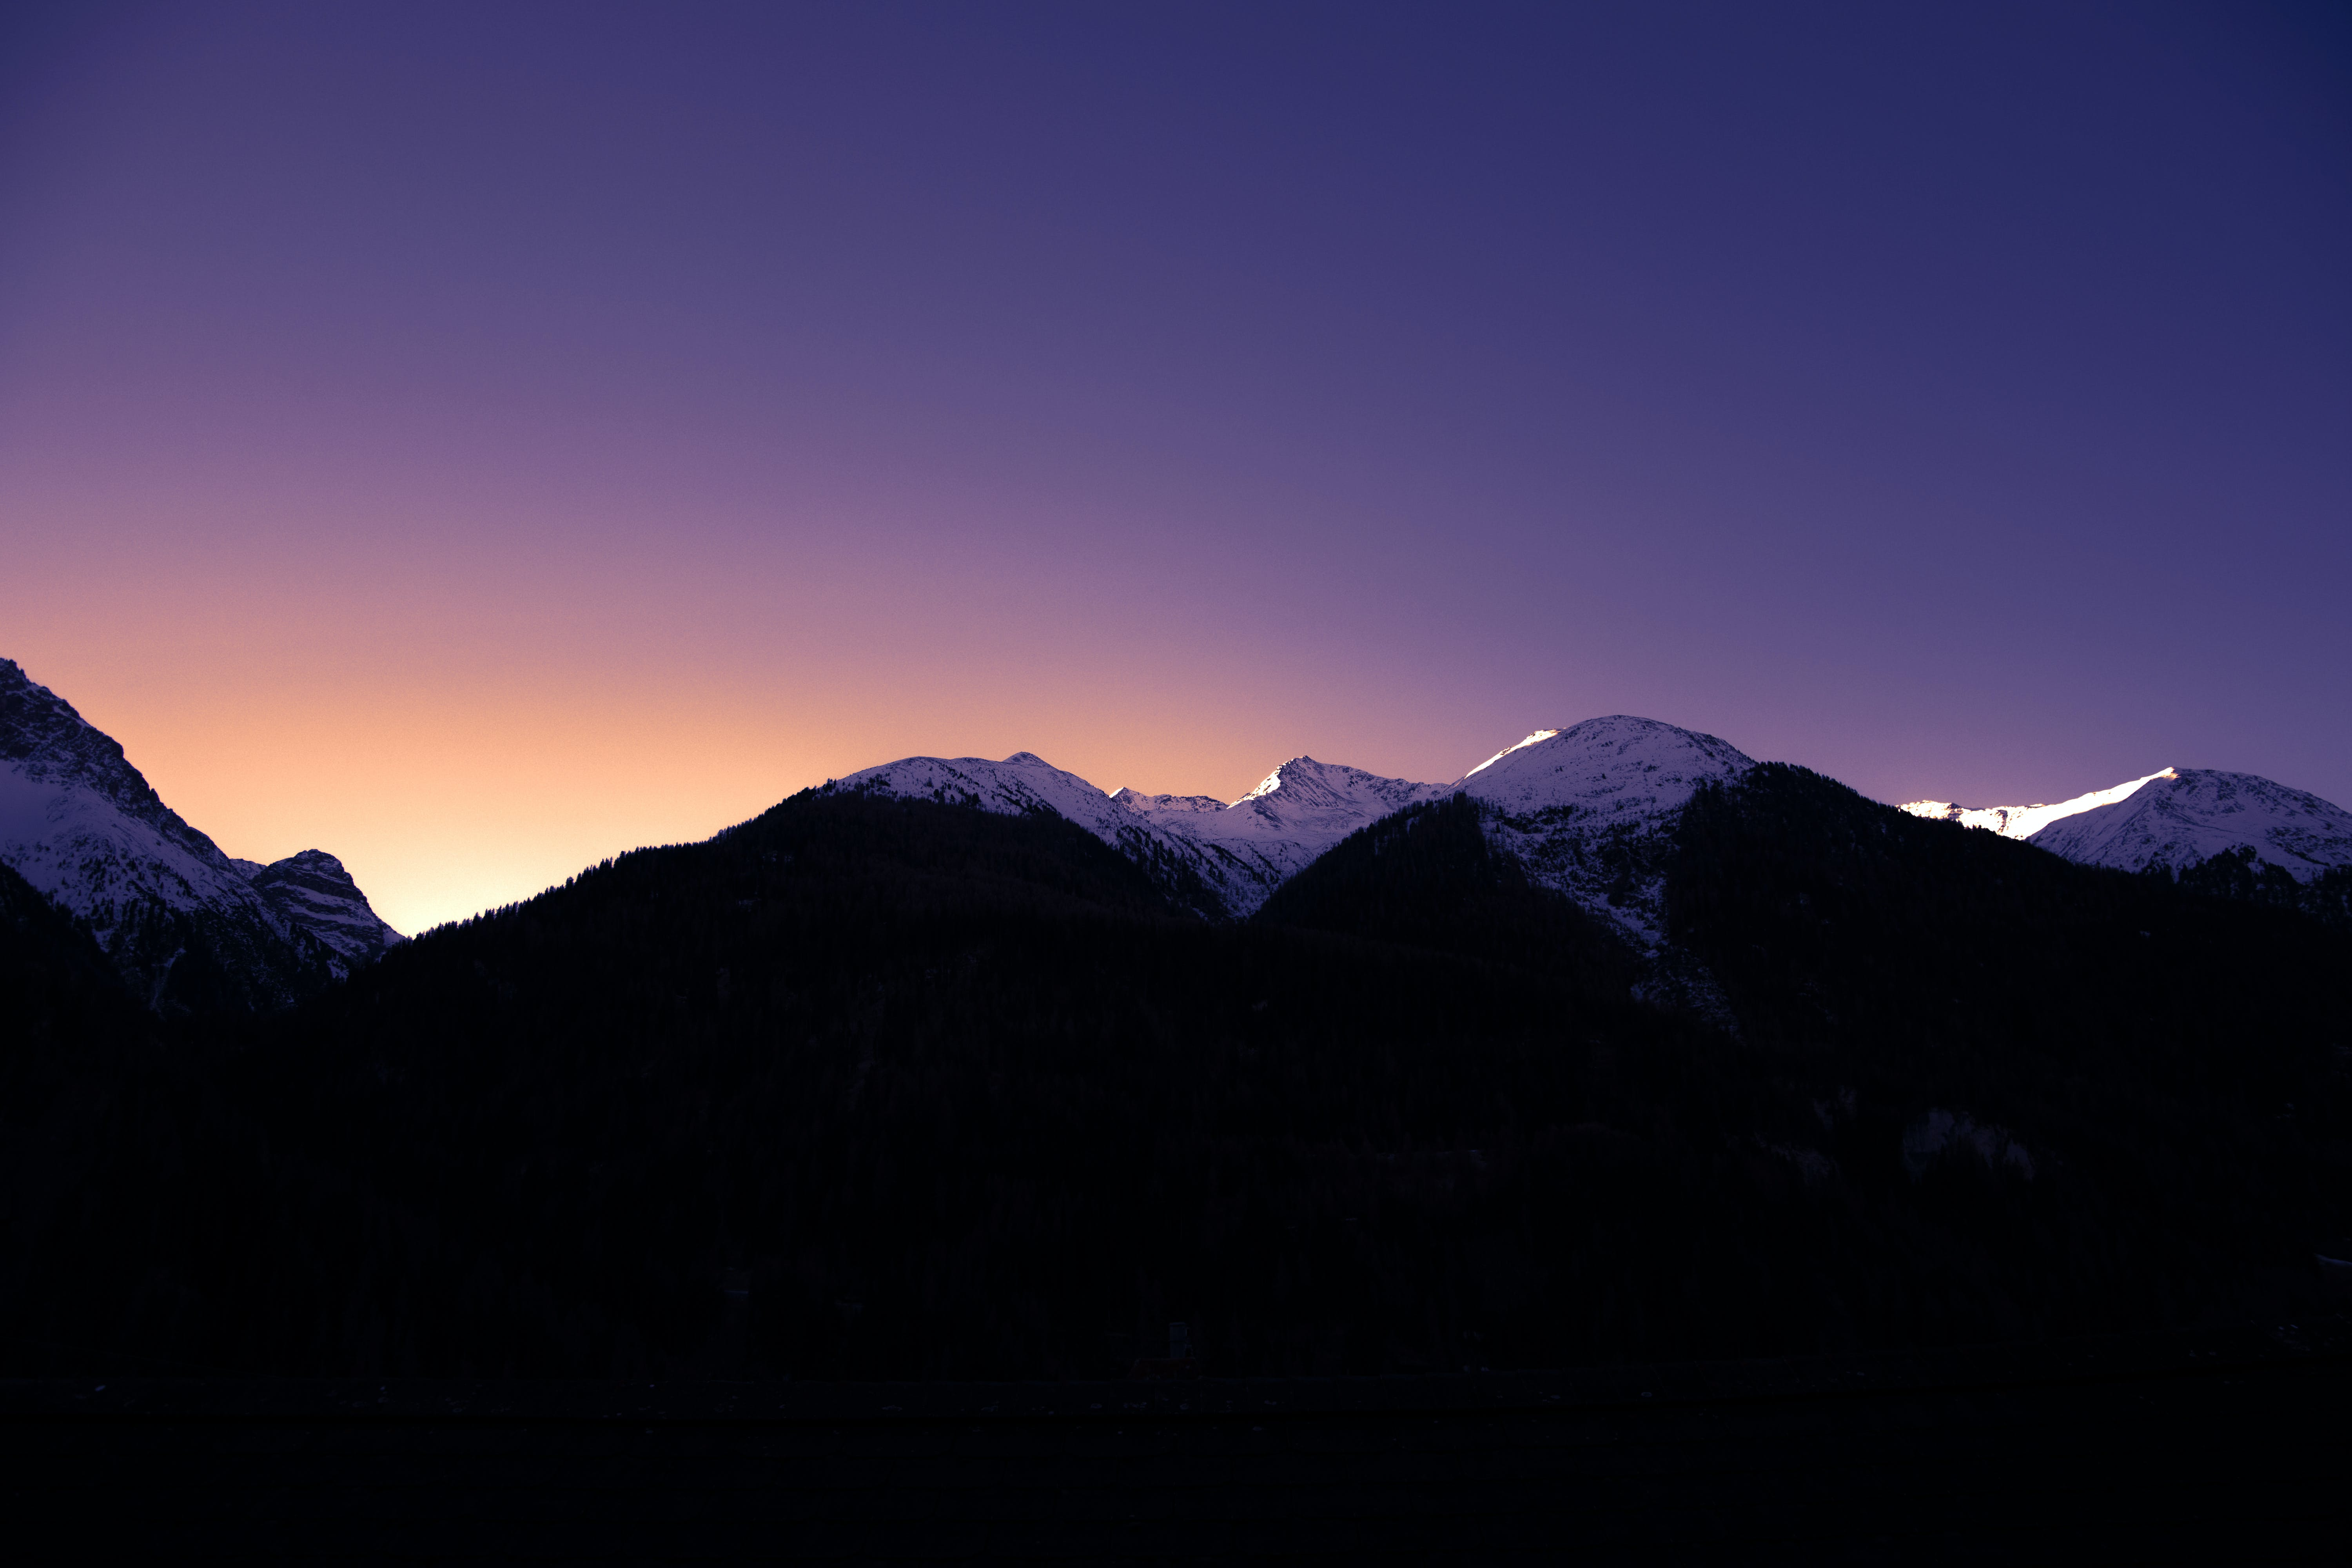 Free stock photo of dusk, light and shadow, morning, mountains